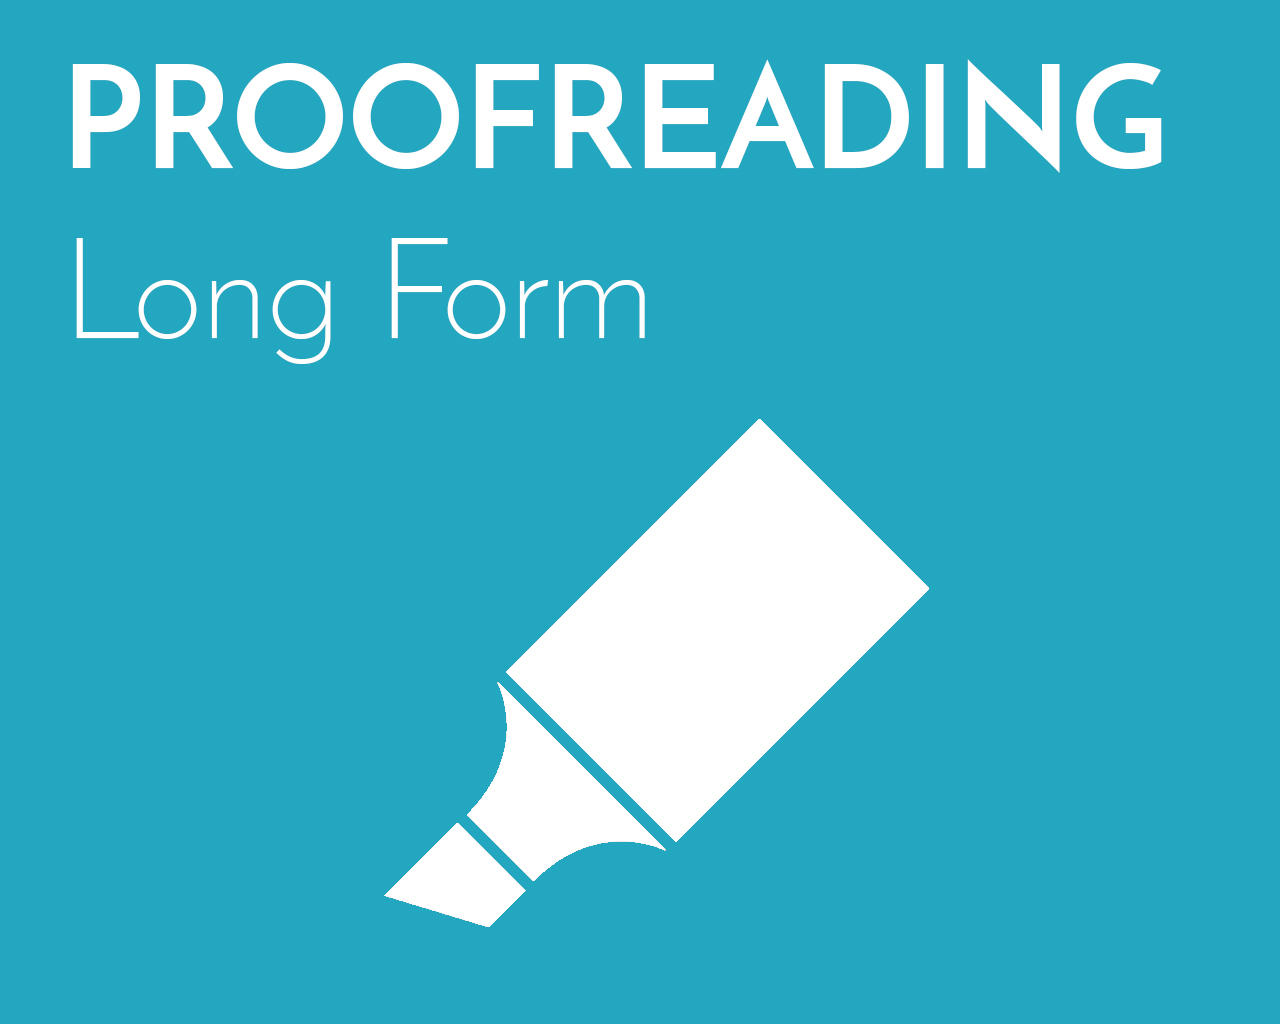 Professional Proofreading (Long Form) by emilyshore - 73456